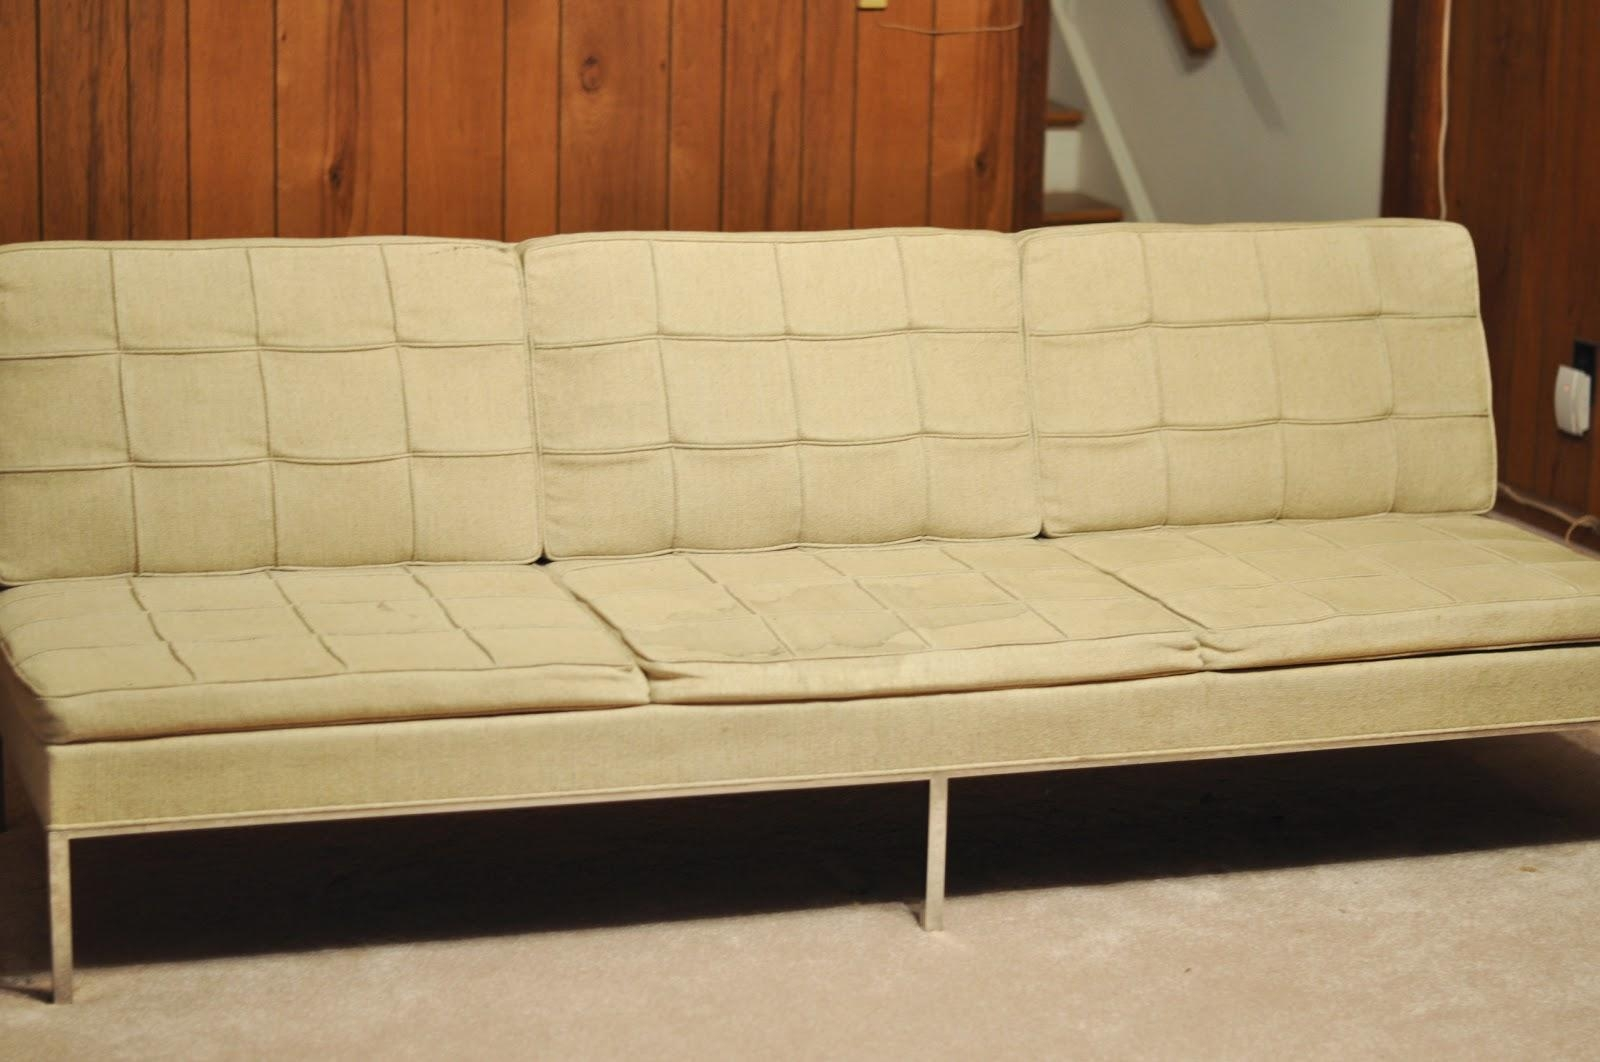 A Treasure In Storage: The Florence Knoll Sofa Comes Home | The Inside Florence Medium Sofas (View 6 of 20)